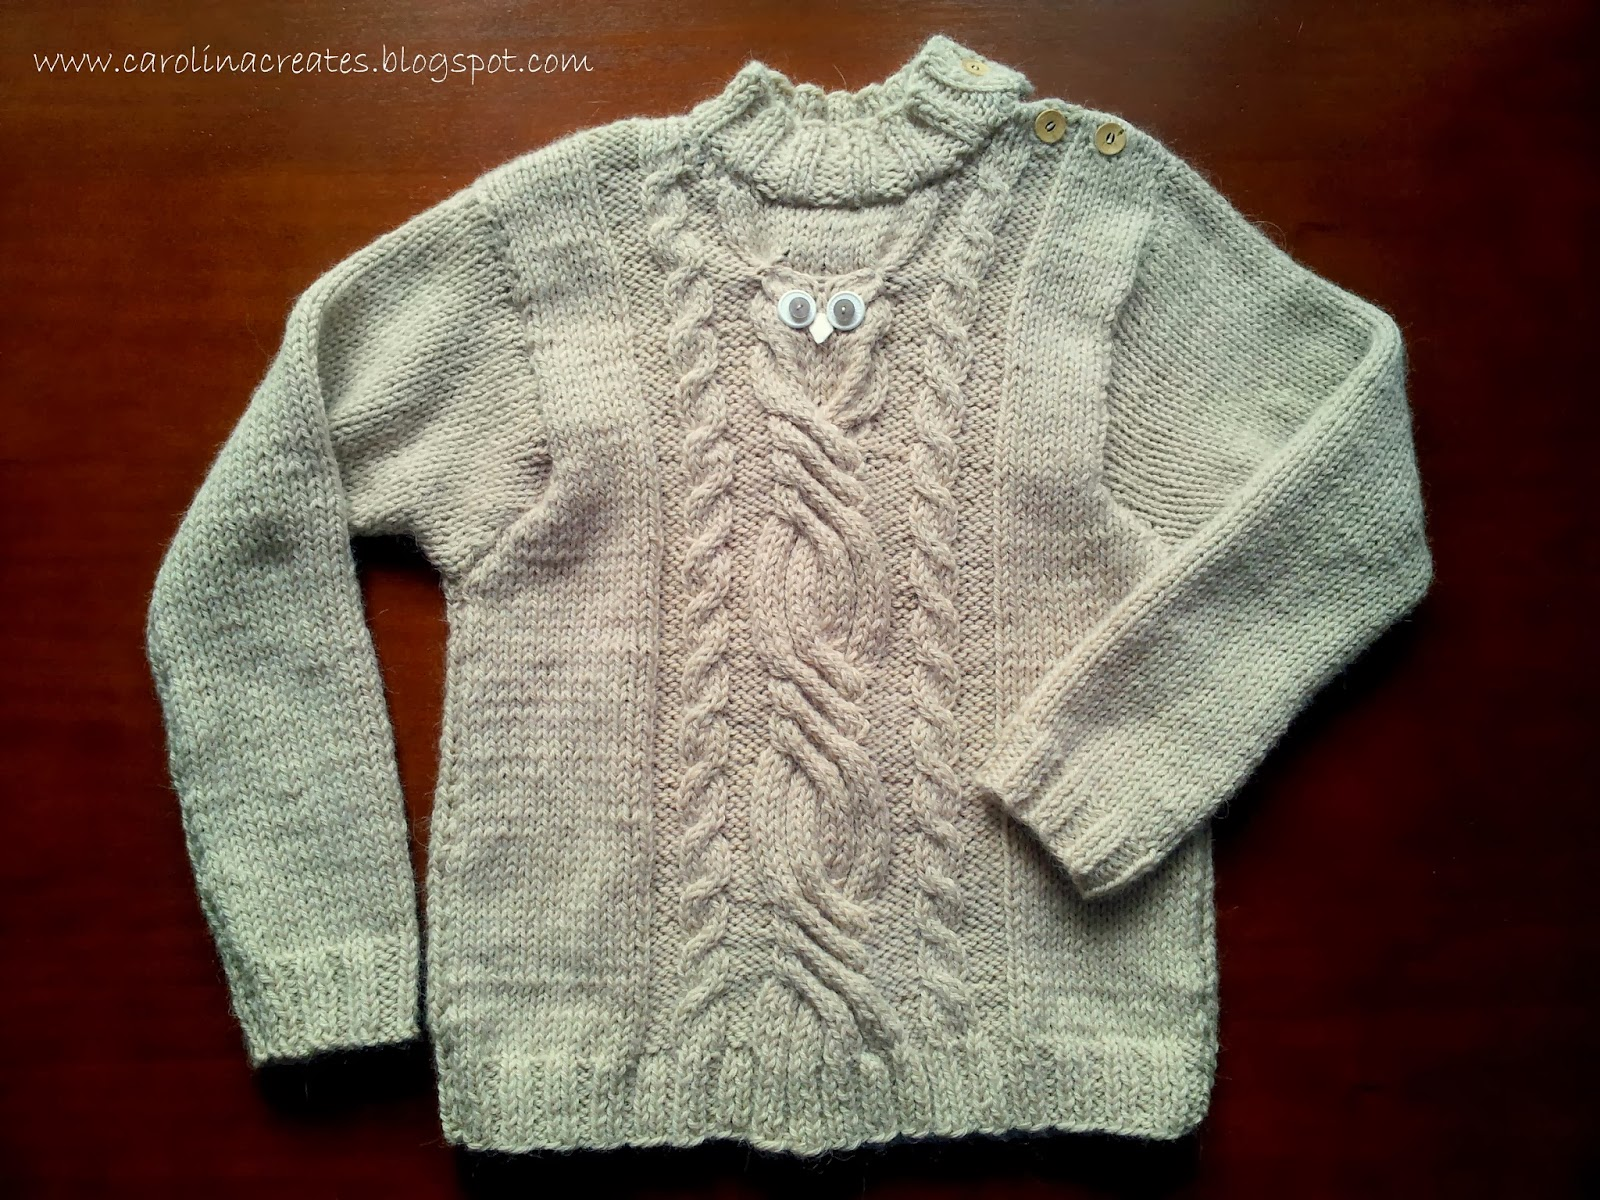 An Owl Cable Sweater